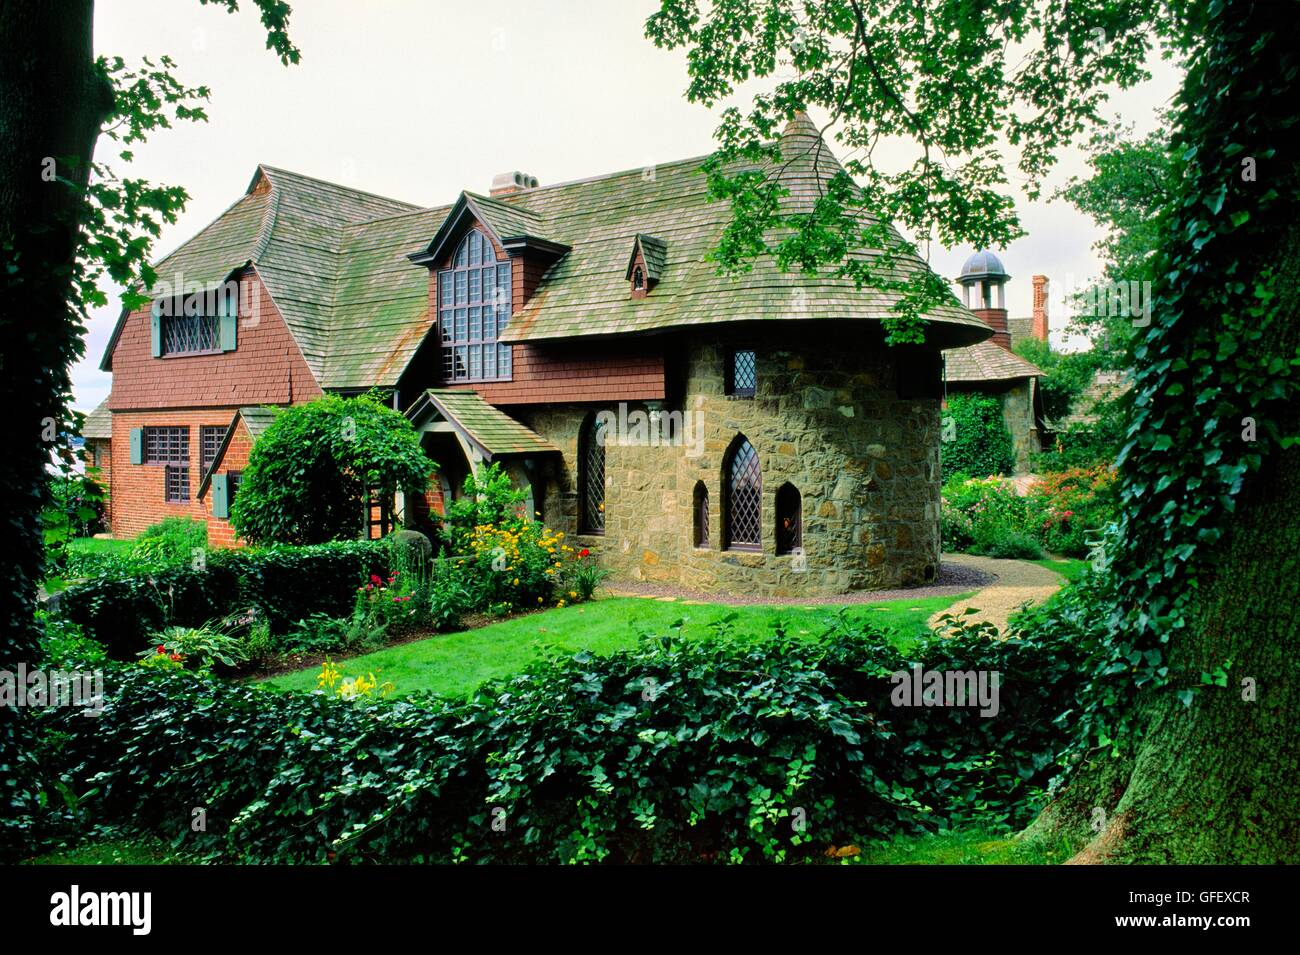 The Sleeper-McCann House known as Beauport, in Gloucester, Massachusetts, New England, USA - Stock Image